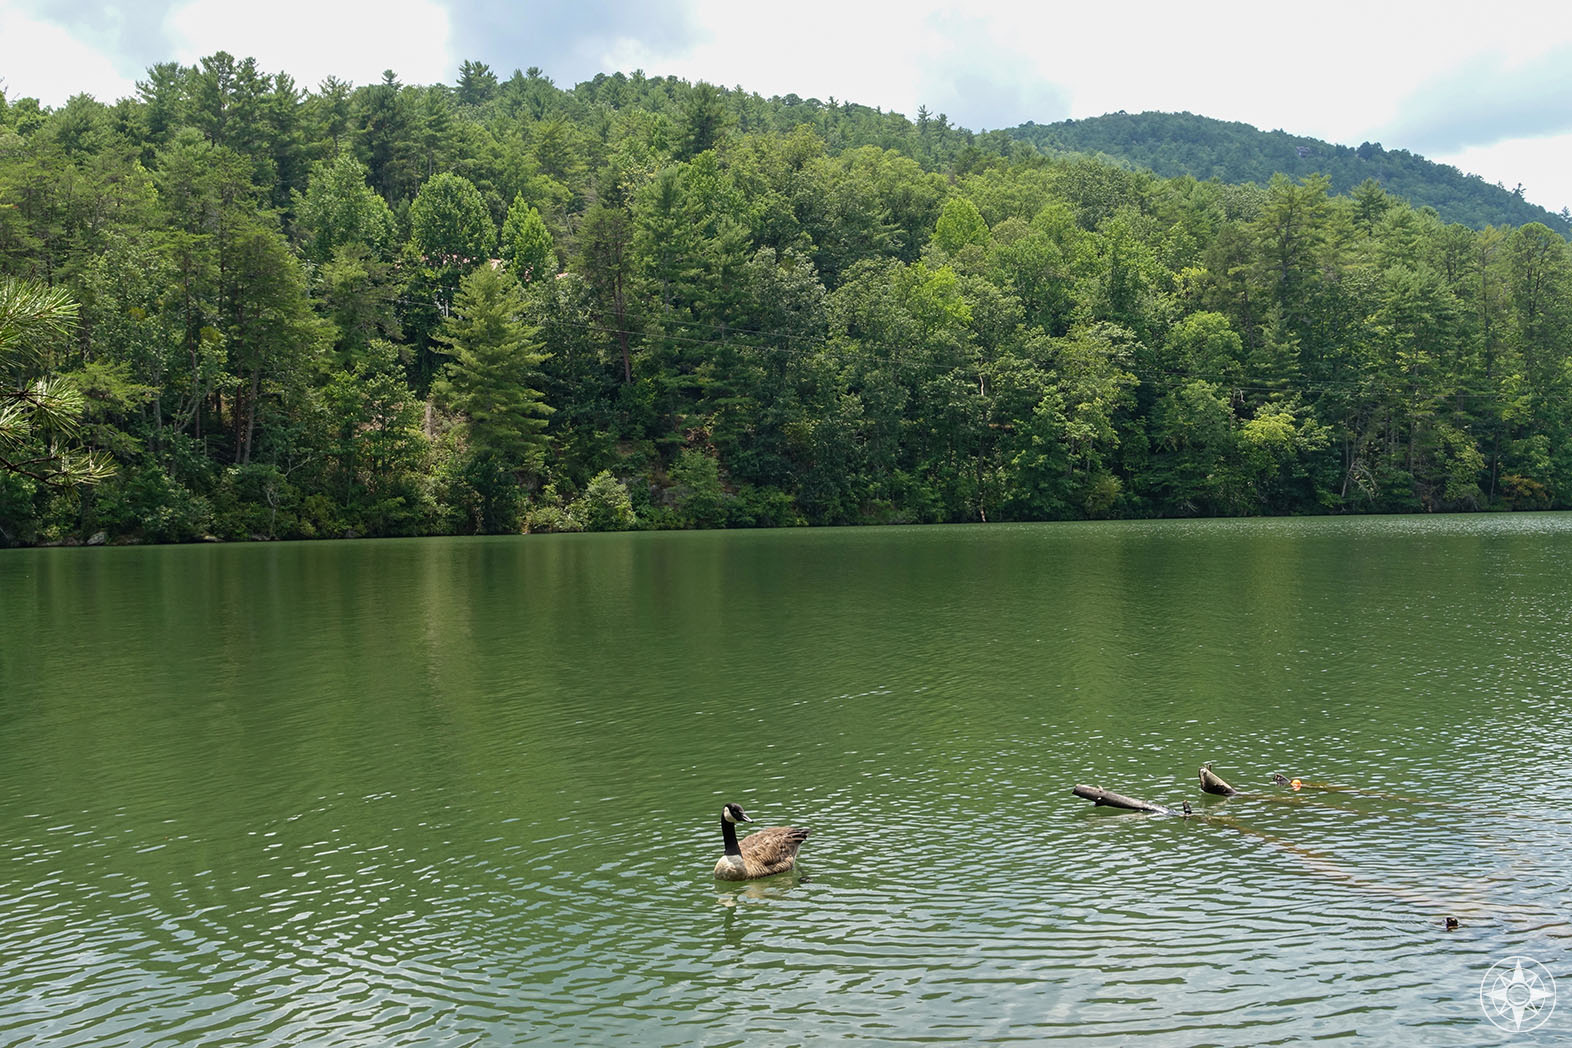 Wild geese on Tallulah Lake above Tallulah Dam and the Falls